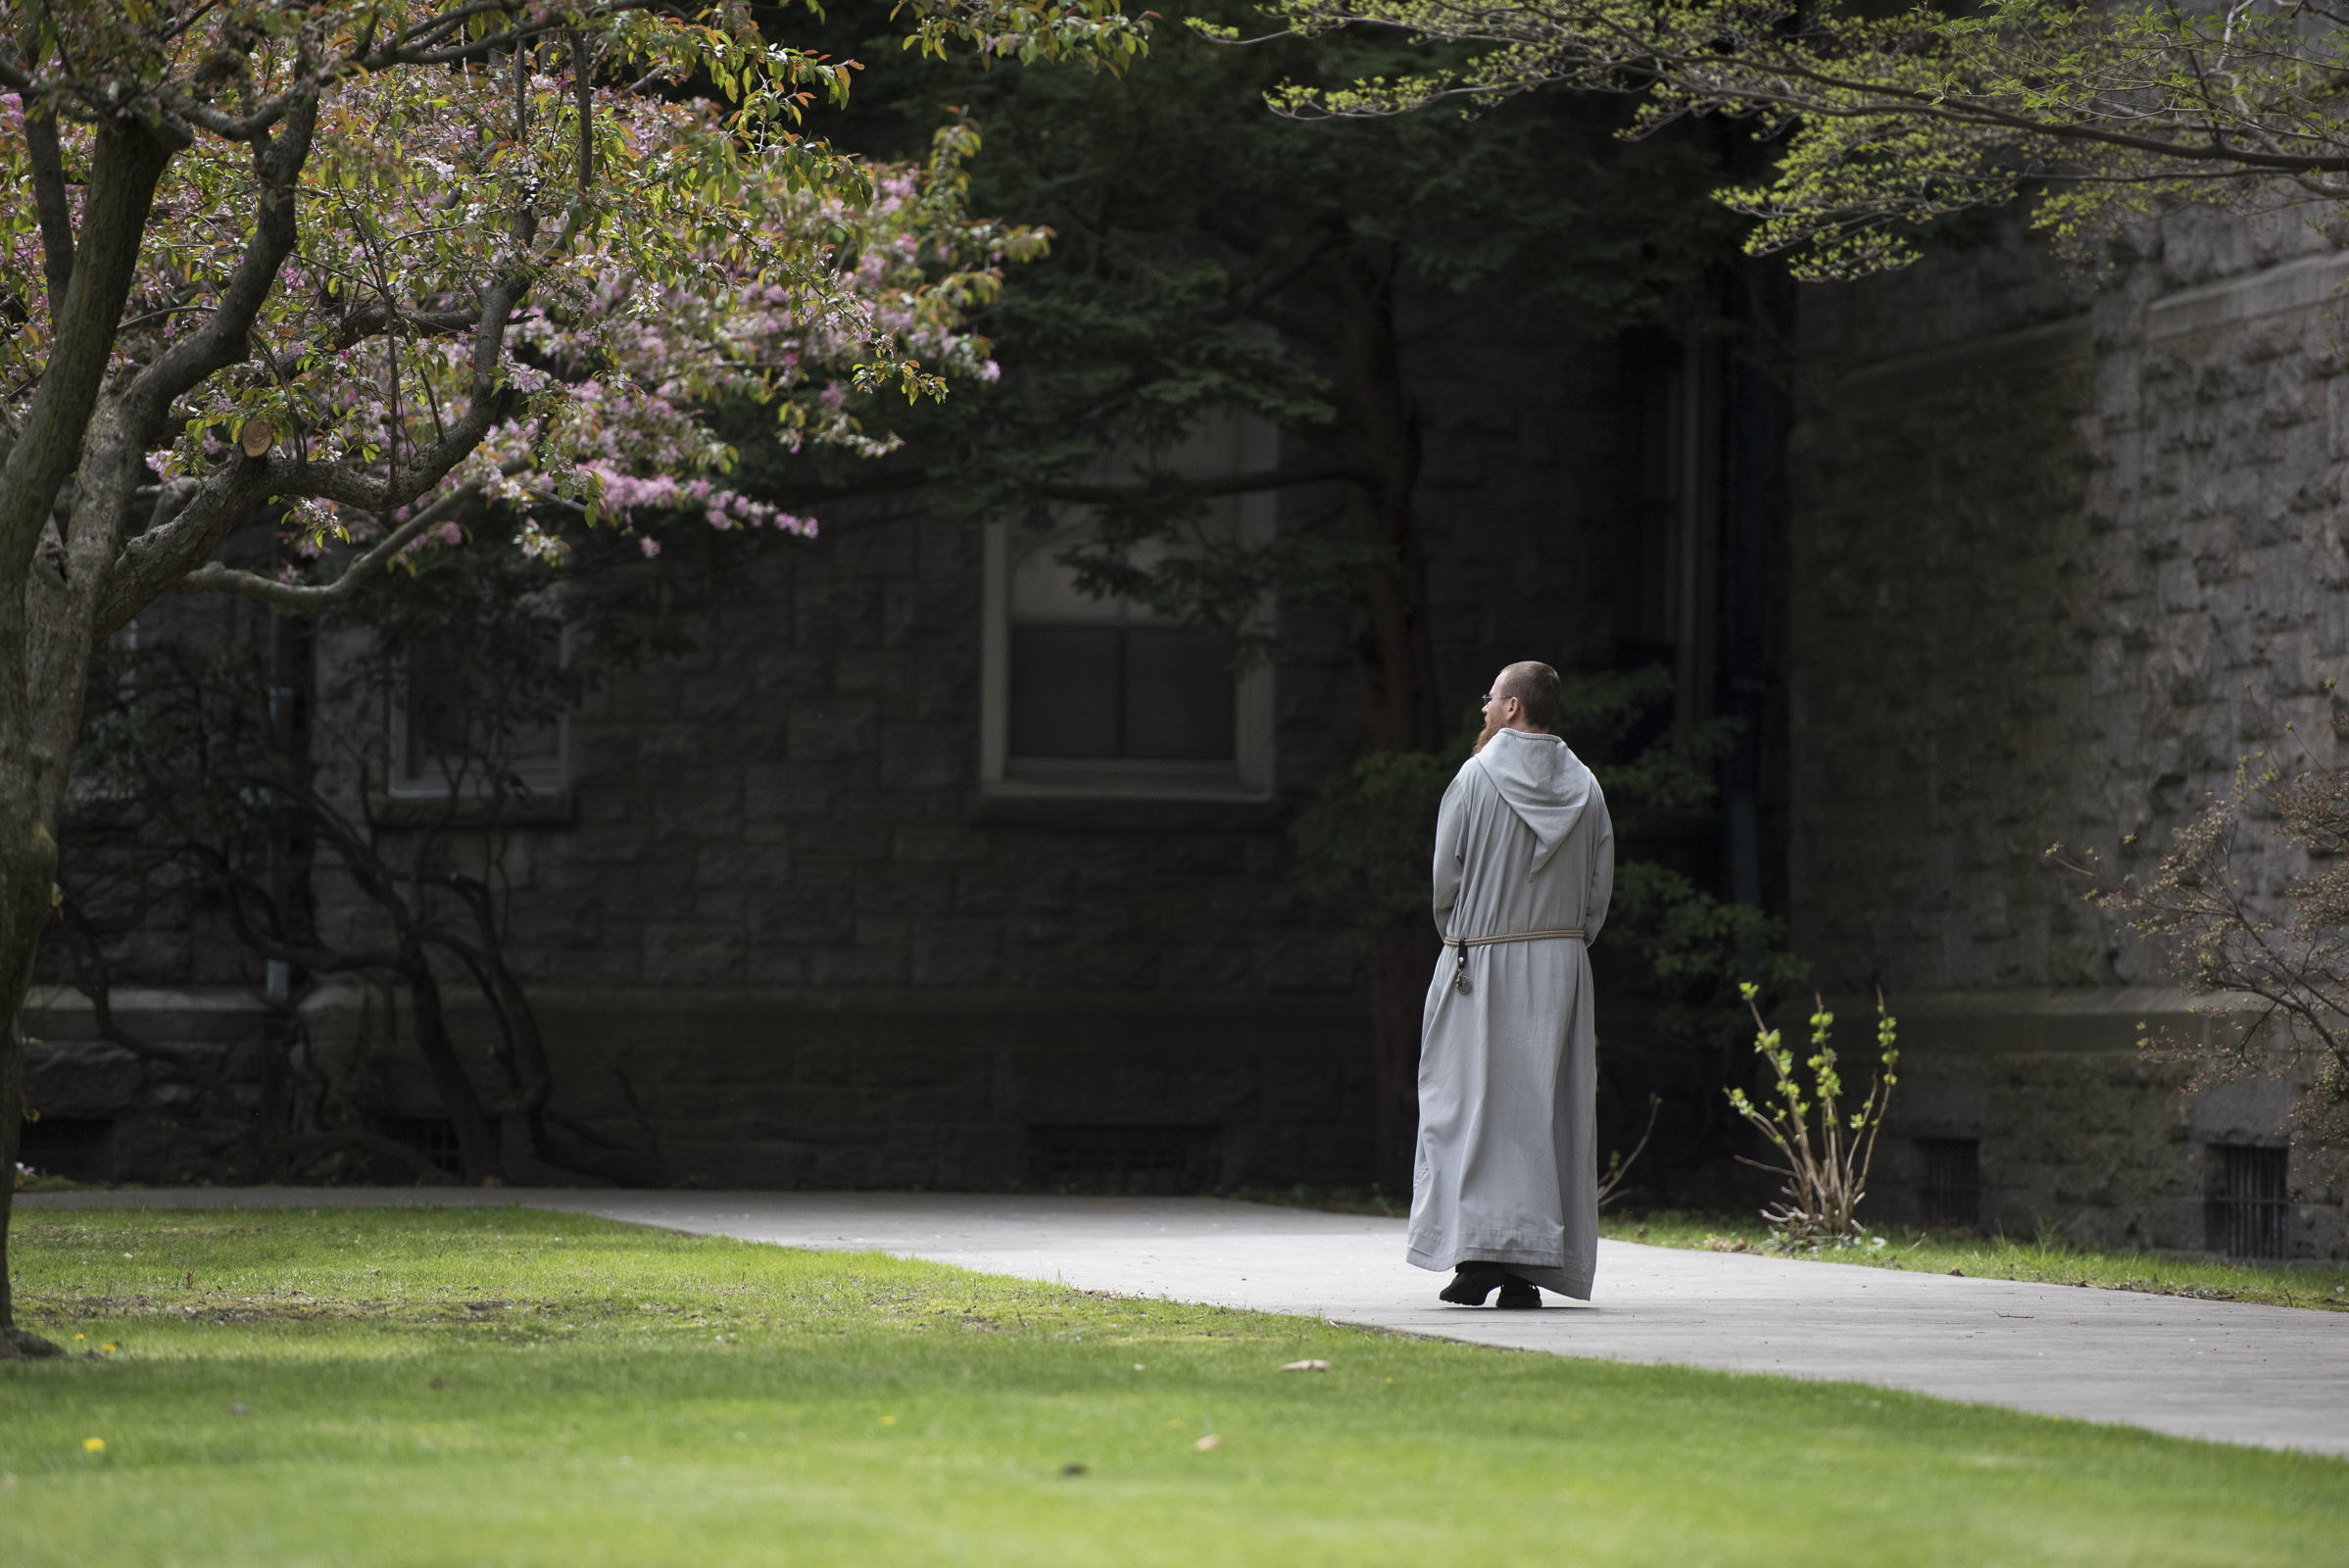 CFR,FRANCISCANS,NEW YORK,DUNWOODIE